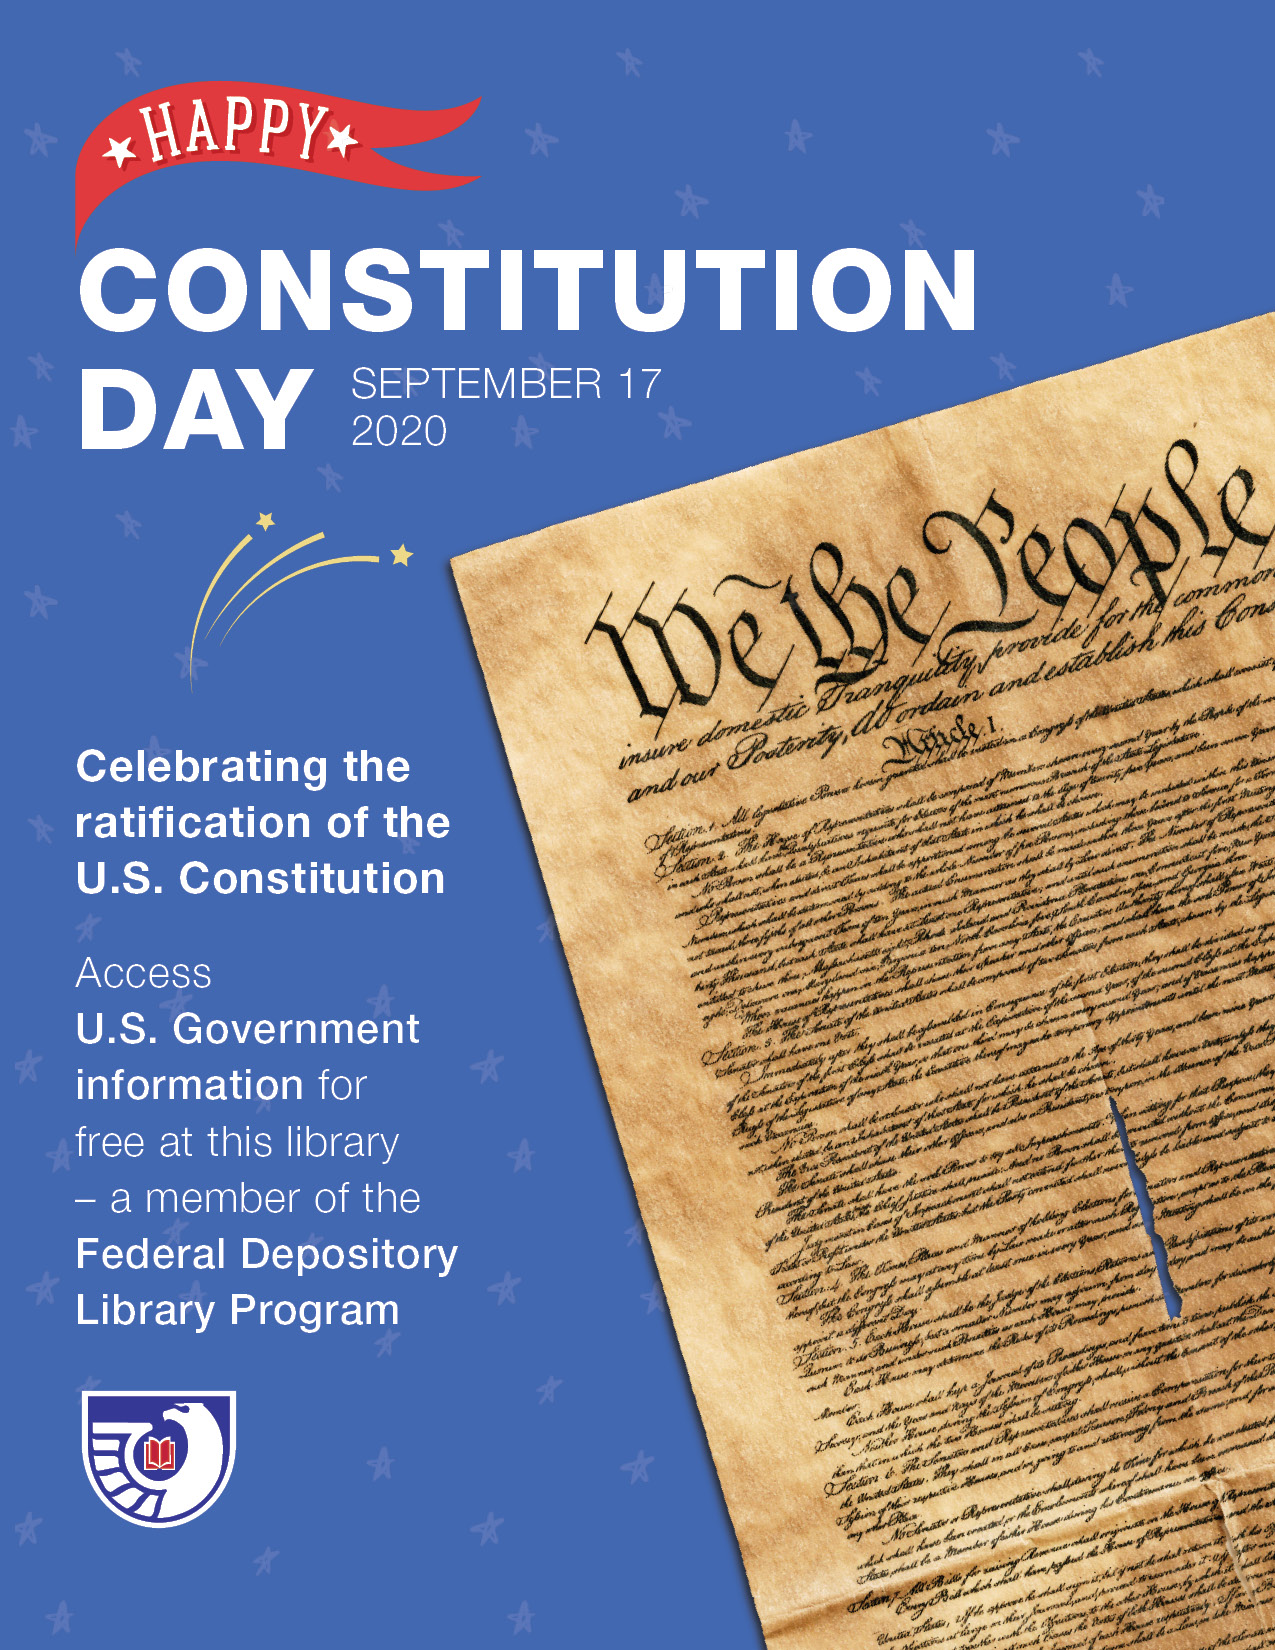 Happy Constitution Day poster